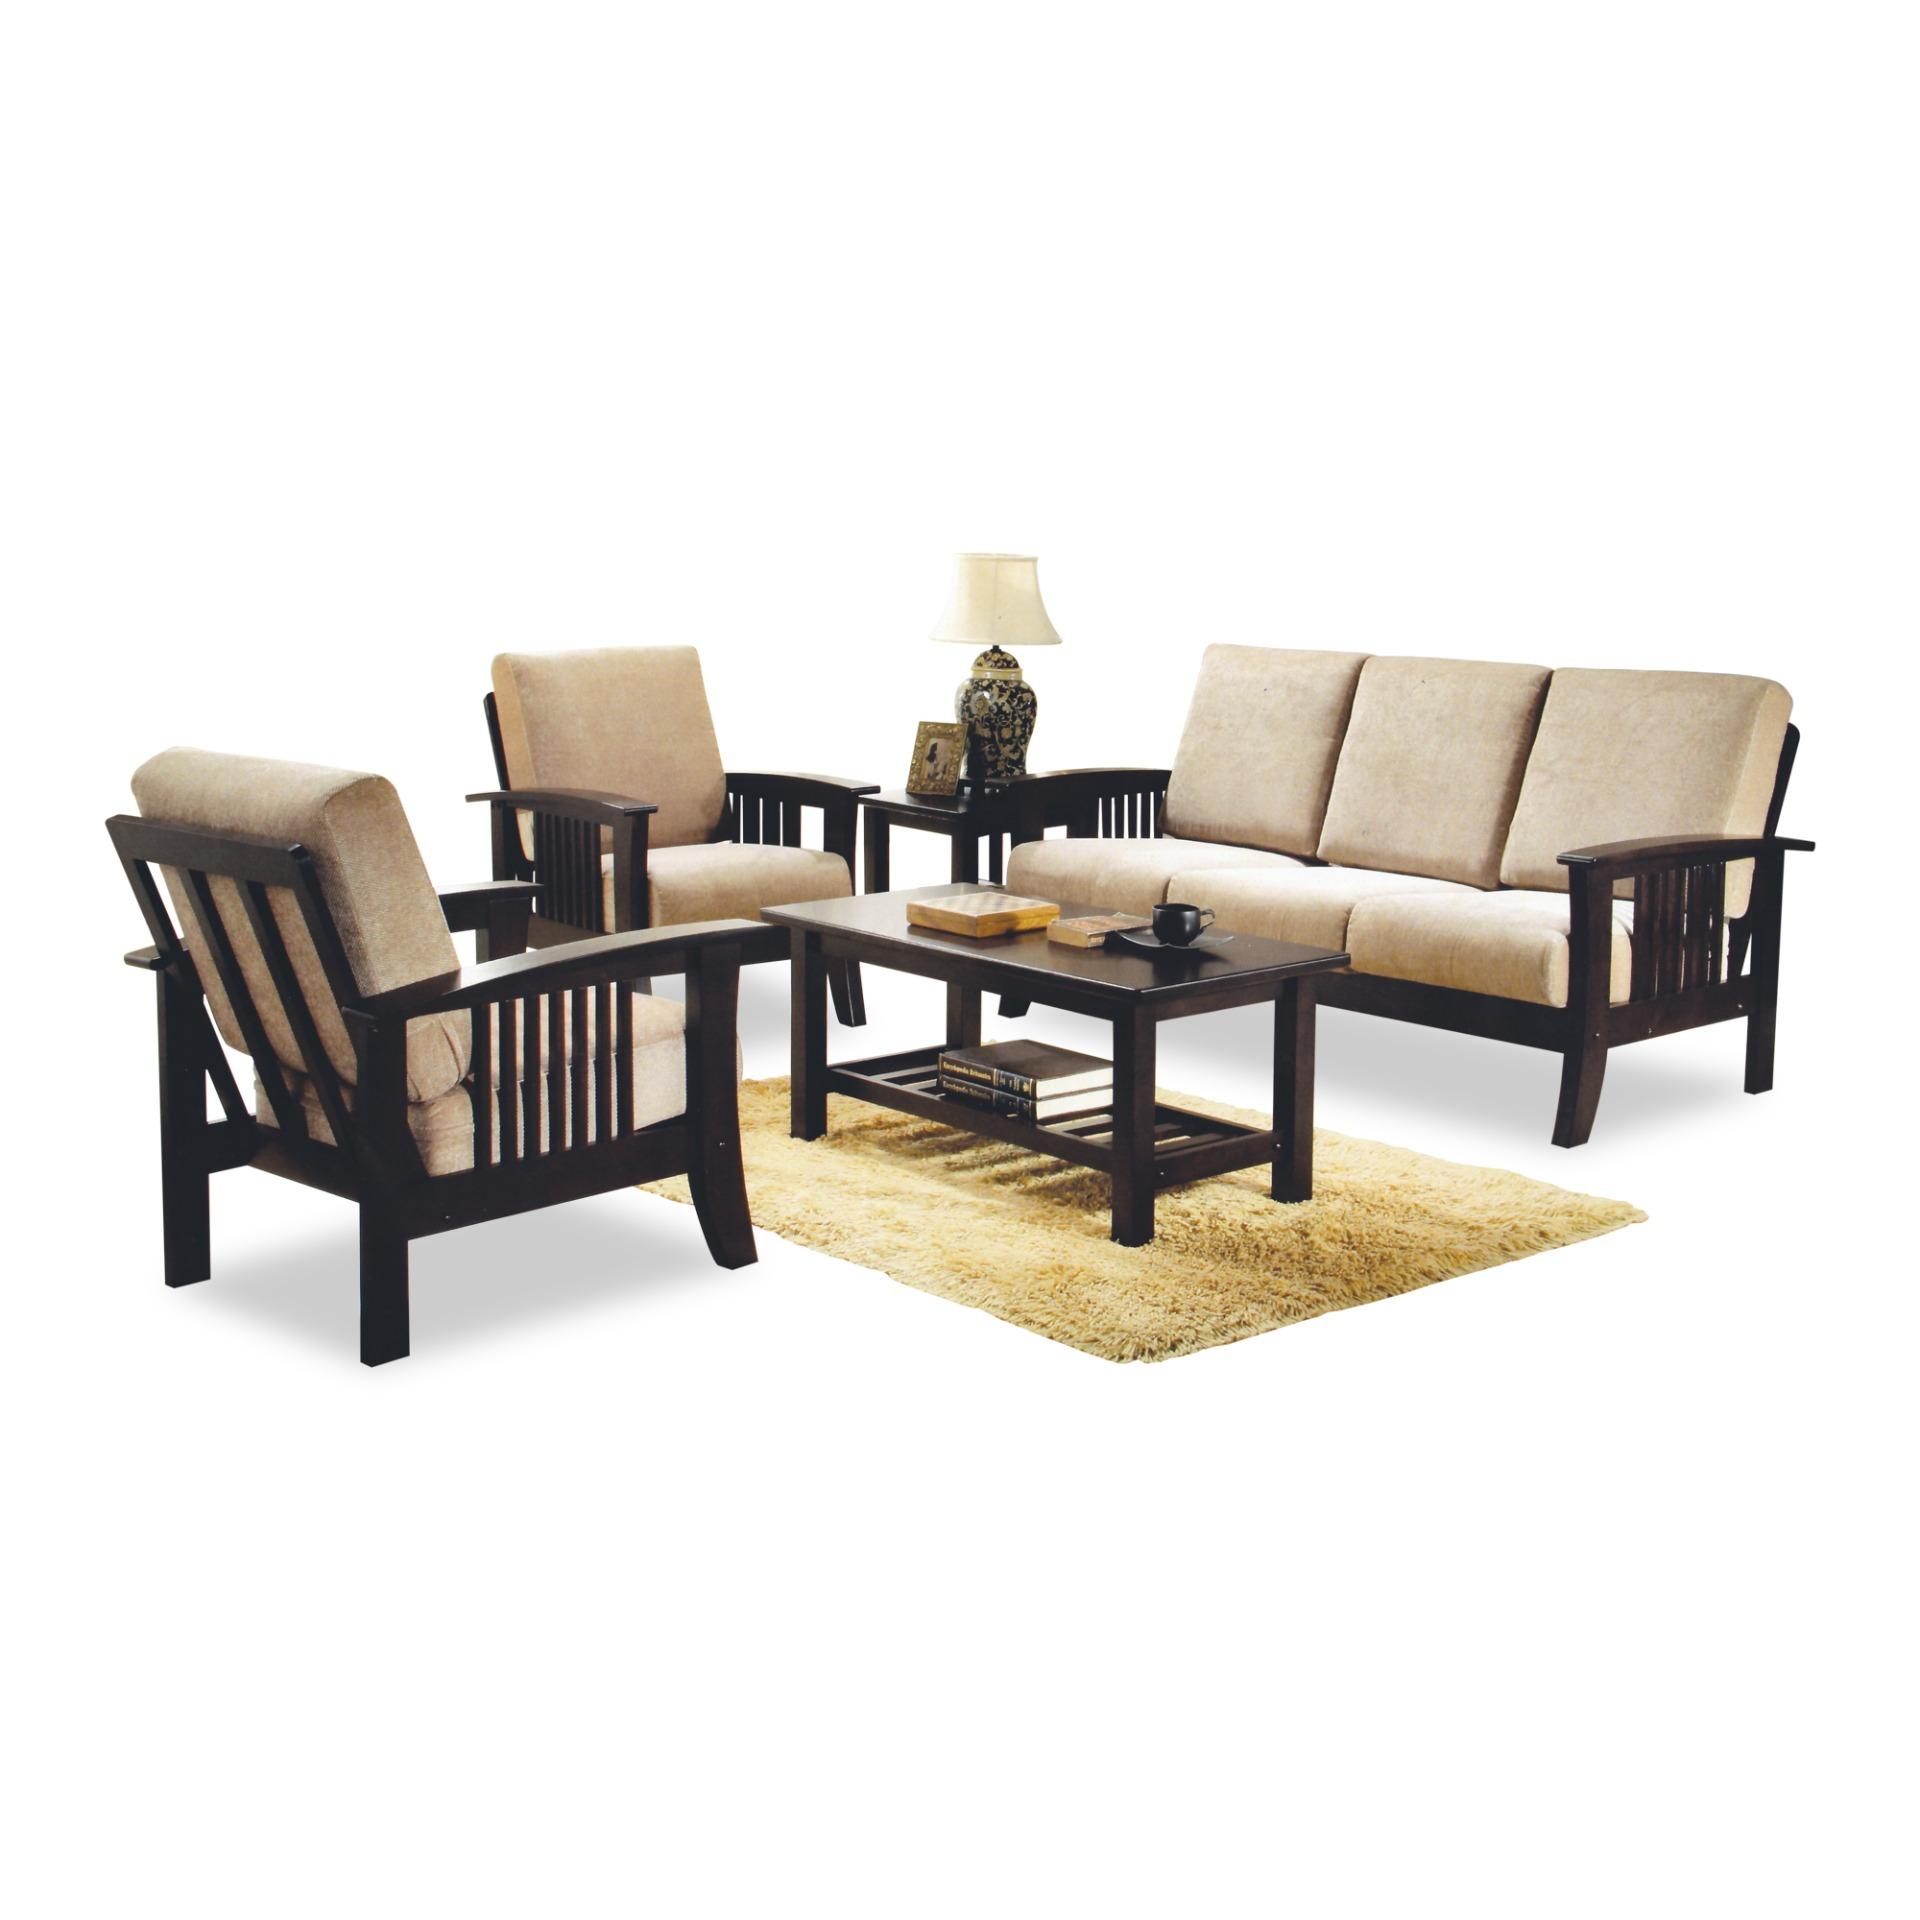 Aaron 3+1+1 Seater Sofa With Coffee Table and Side Table (FREE DELIVERY)(FREE ASSEMBLY)